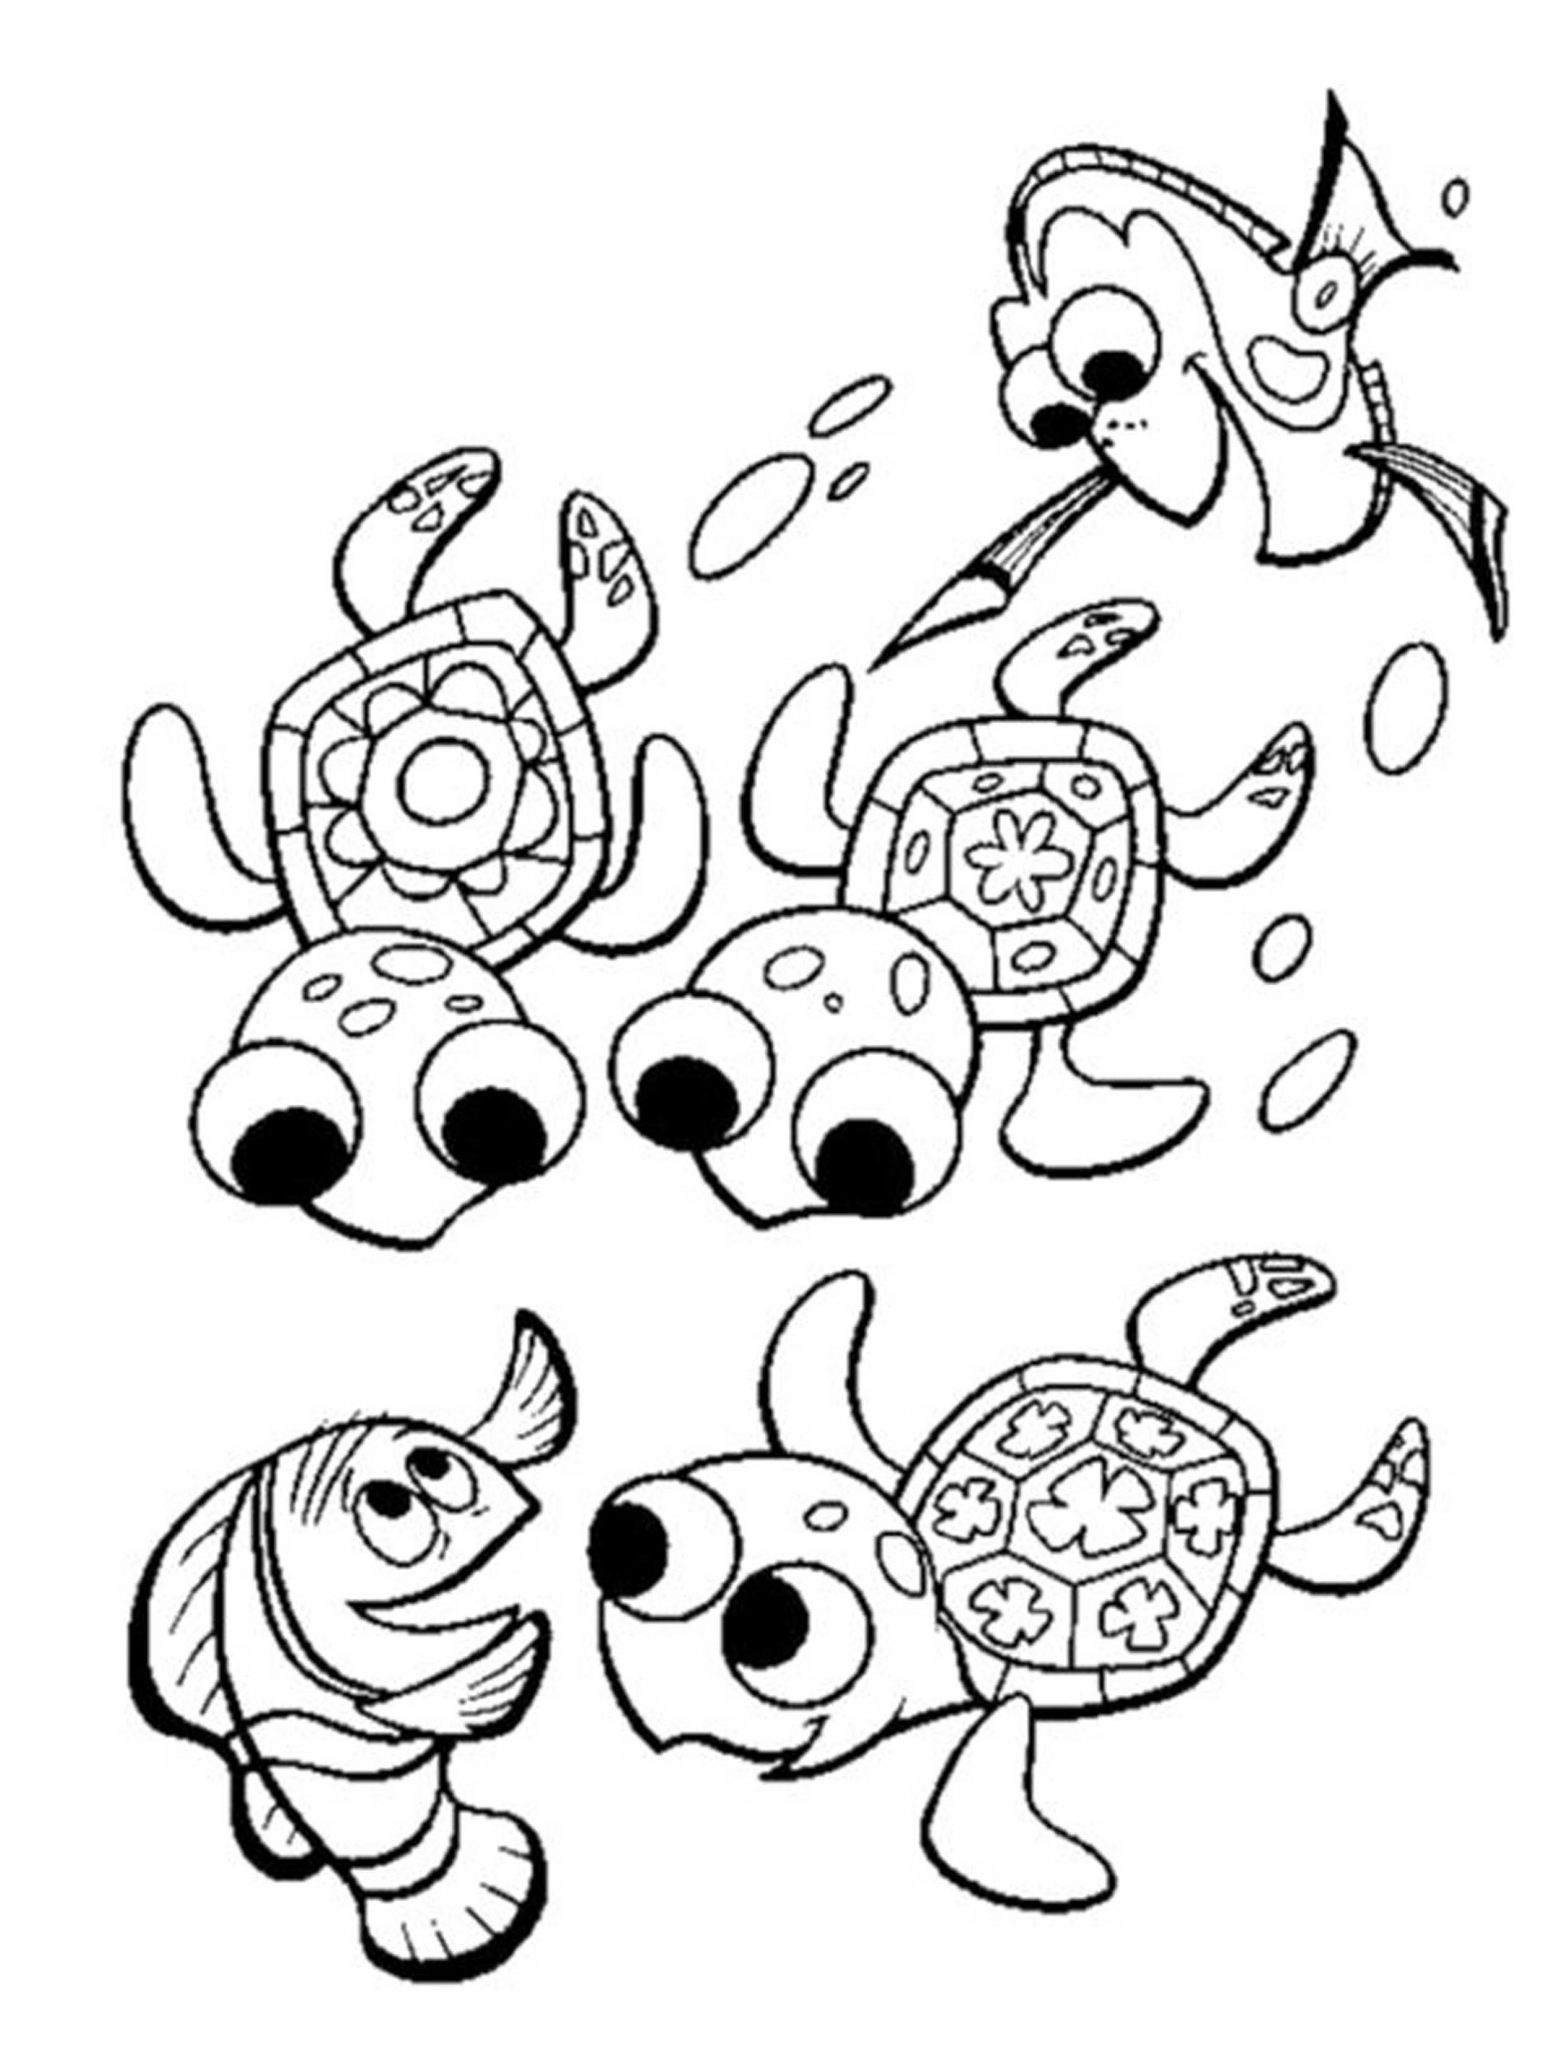 turtle printable coloring pages free turtle coloring pages for adults printable to coloring turtle pages printable